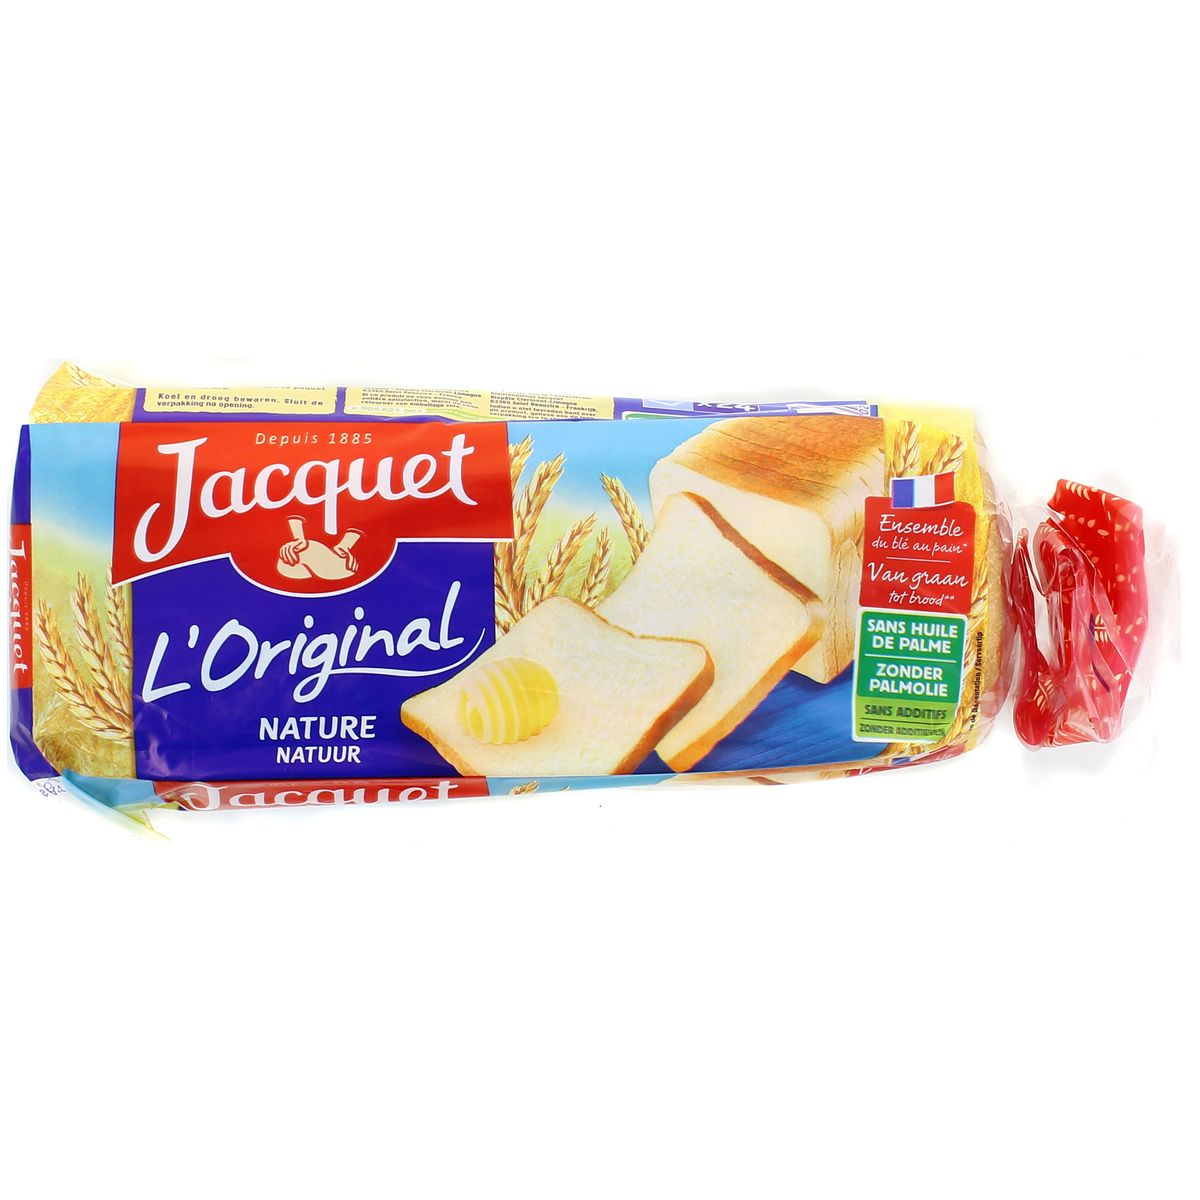 Pain de mie nature l'original, Jacquet (450 g)